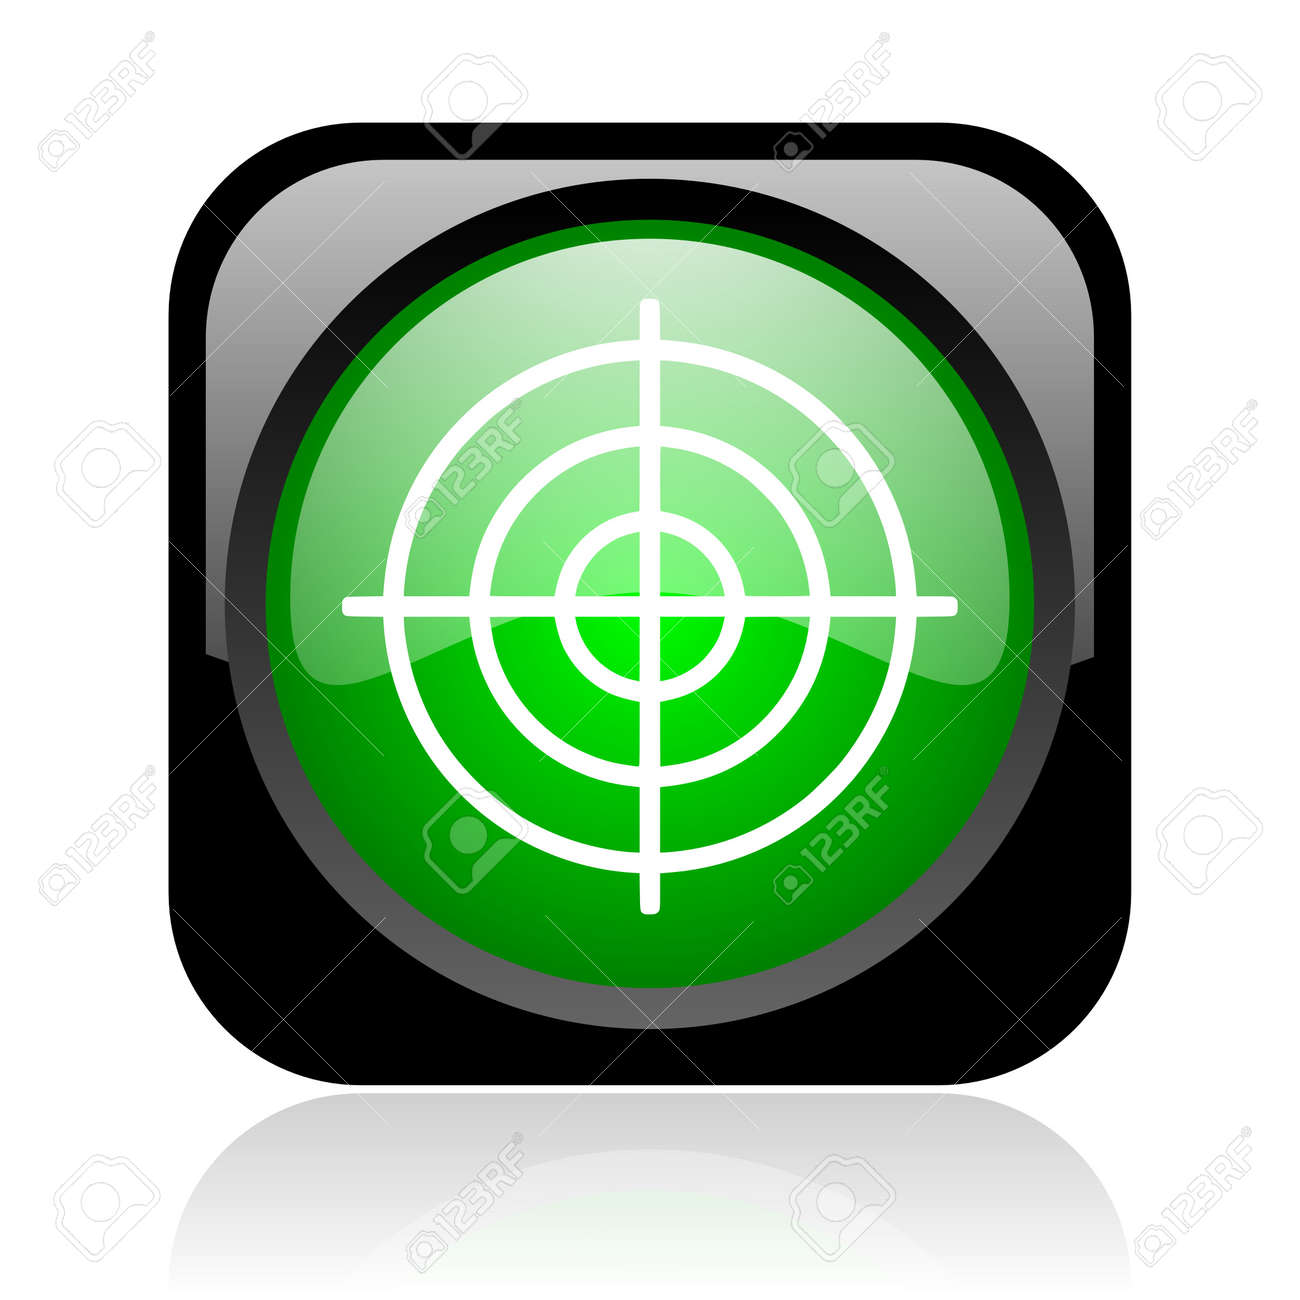 target black and green square web glossy icon Stock Photo - 18972344